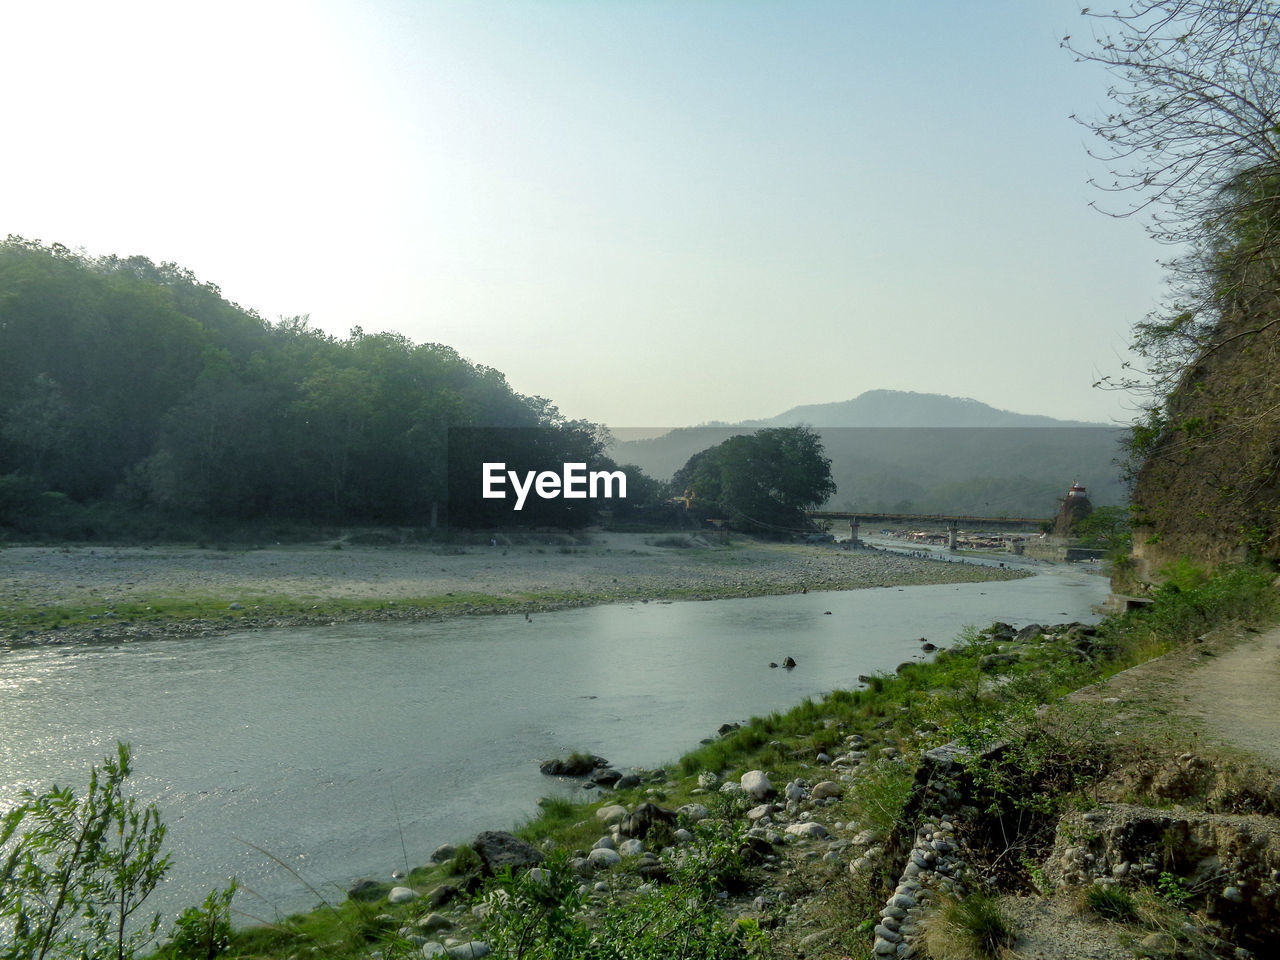 water, tree, sky, tranquility, plant, scenics - nature, tranquil scene, beauty in nature, nature, day, no people, mountain, river, clear sky, non-urban scene, land, outdoors, flowing water